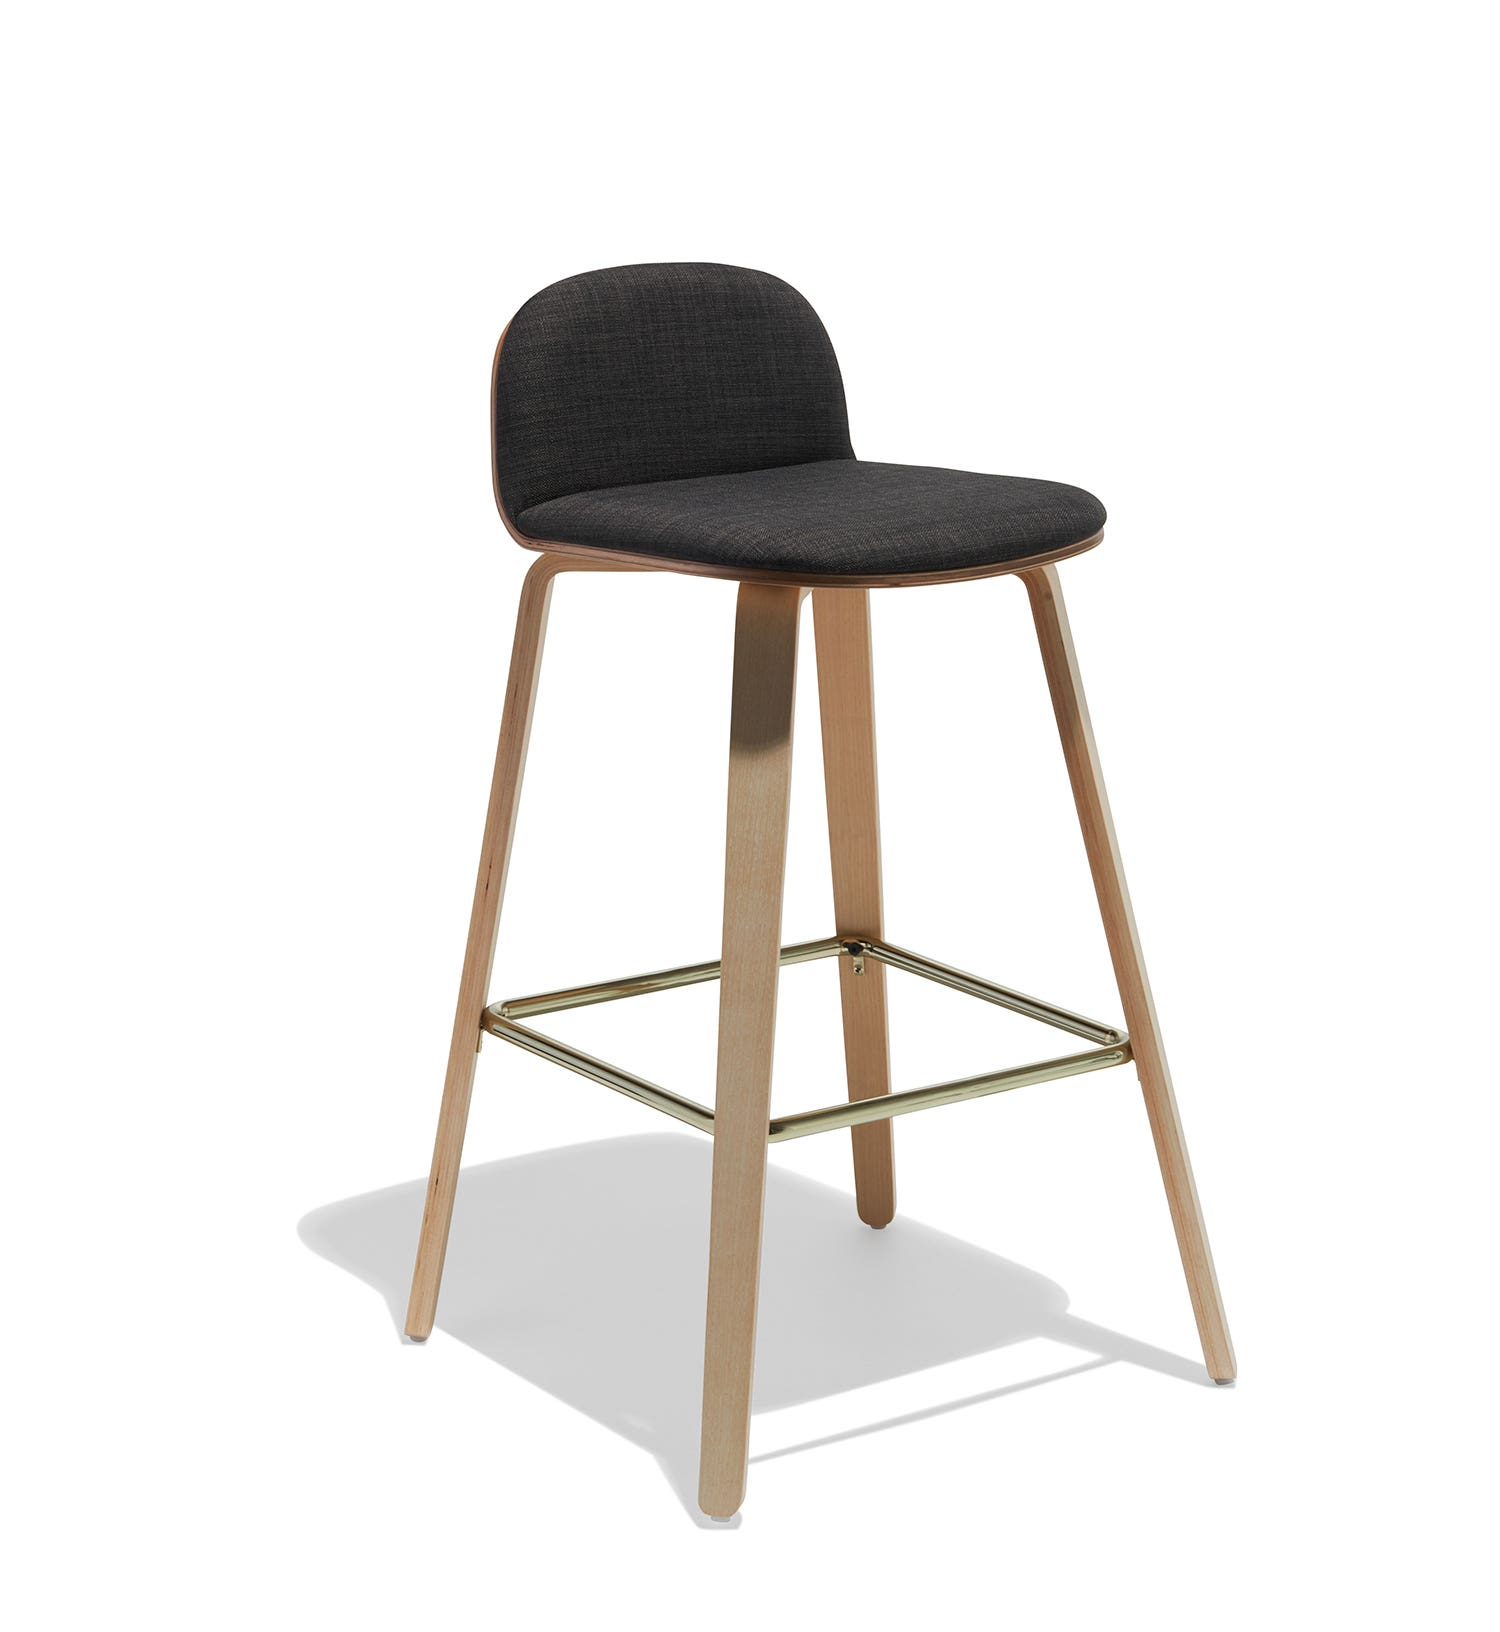 Bloom Bar Stool Stools Shop : 20170202g45basbgrydbar132sides from www.industrywest.com size 1500 x 1632 jpeg 367kB